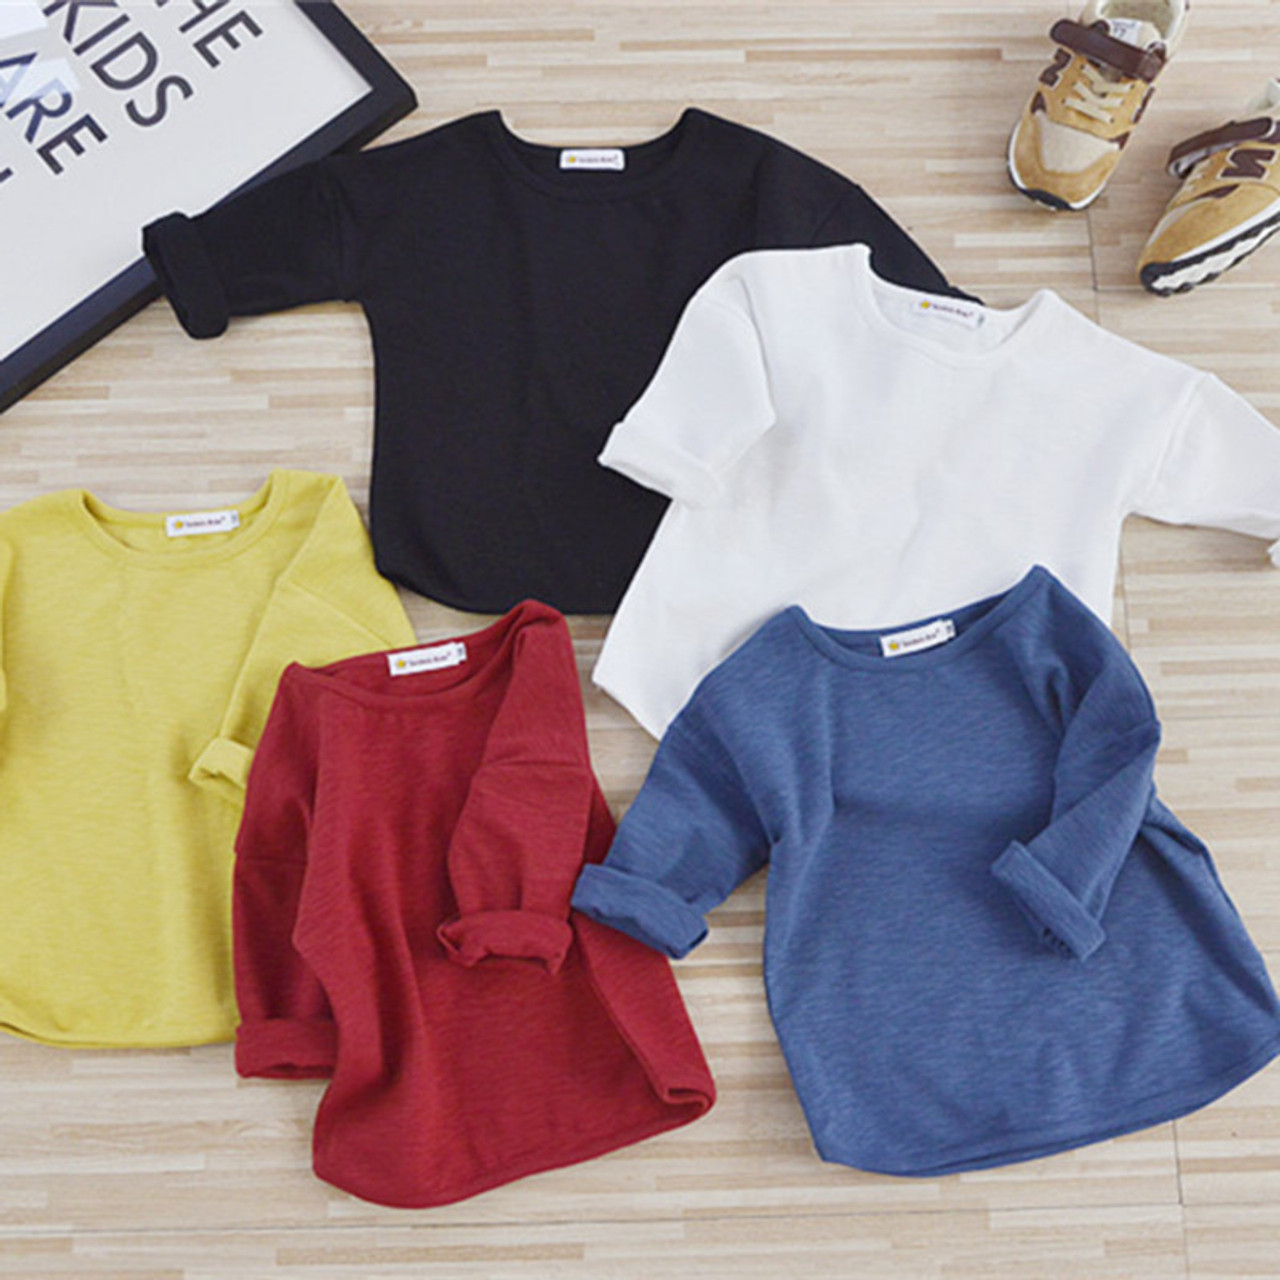 2018 New Spring Baby T Shirts Girl Boys Solid Color Long Sleeve T-shirt 1  ... 413913ccea5